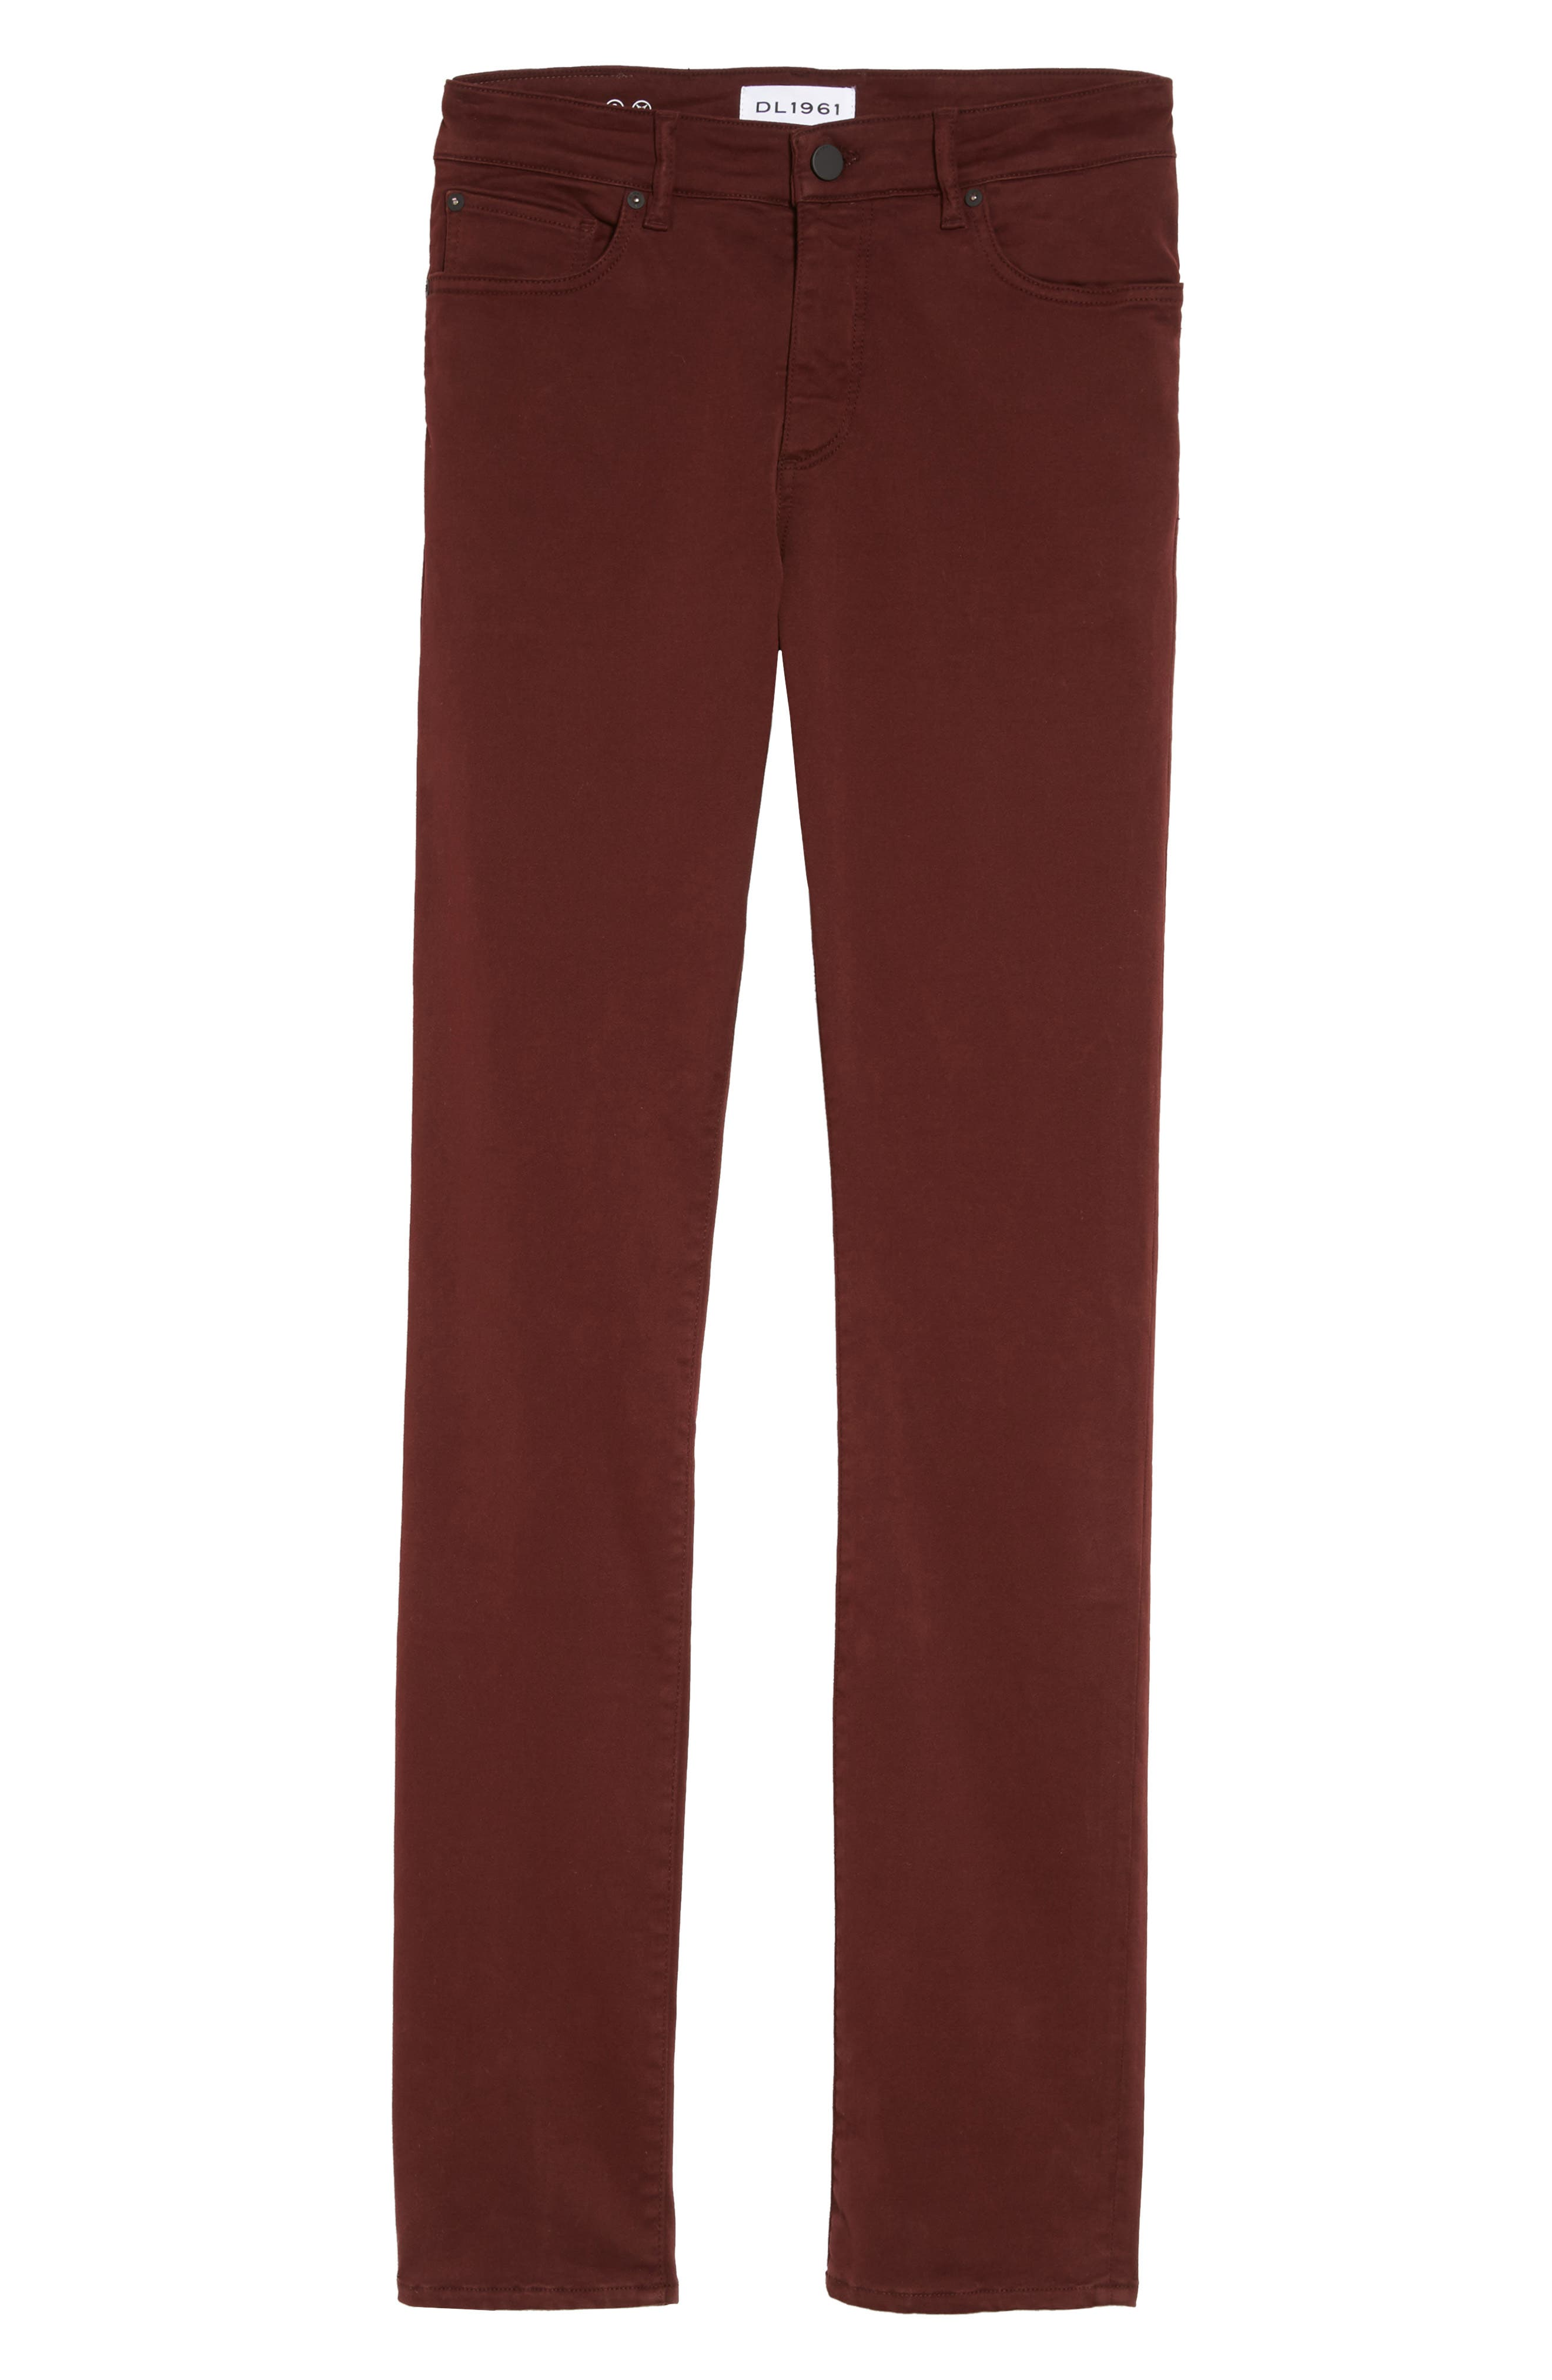 Russell Slim Fit Sateen Twill Pants,                             Alternate thumbnail 61, color,